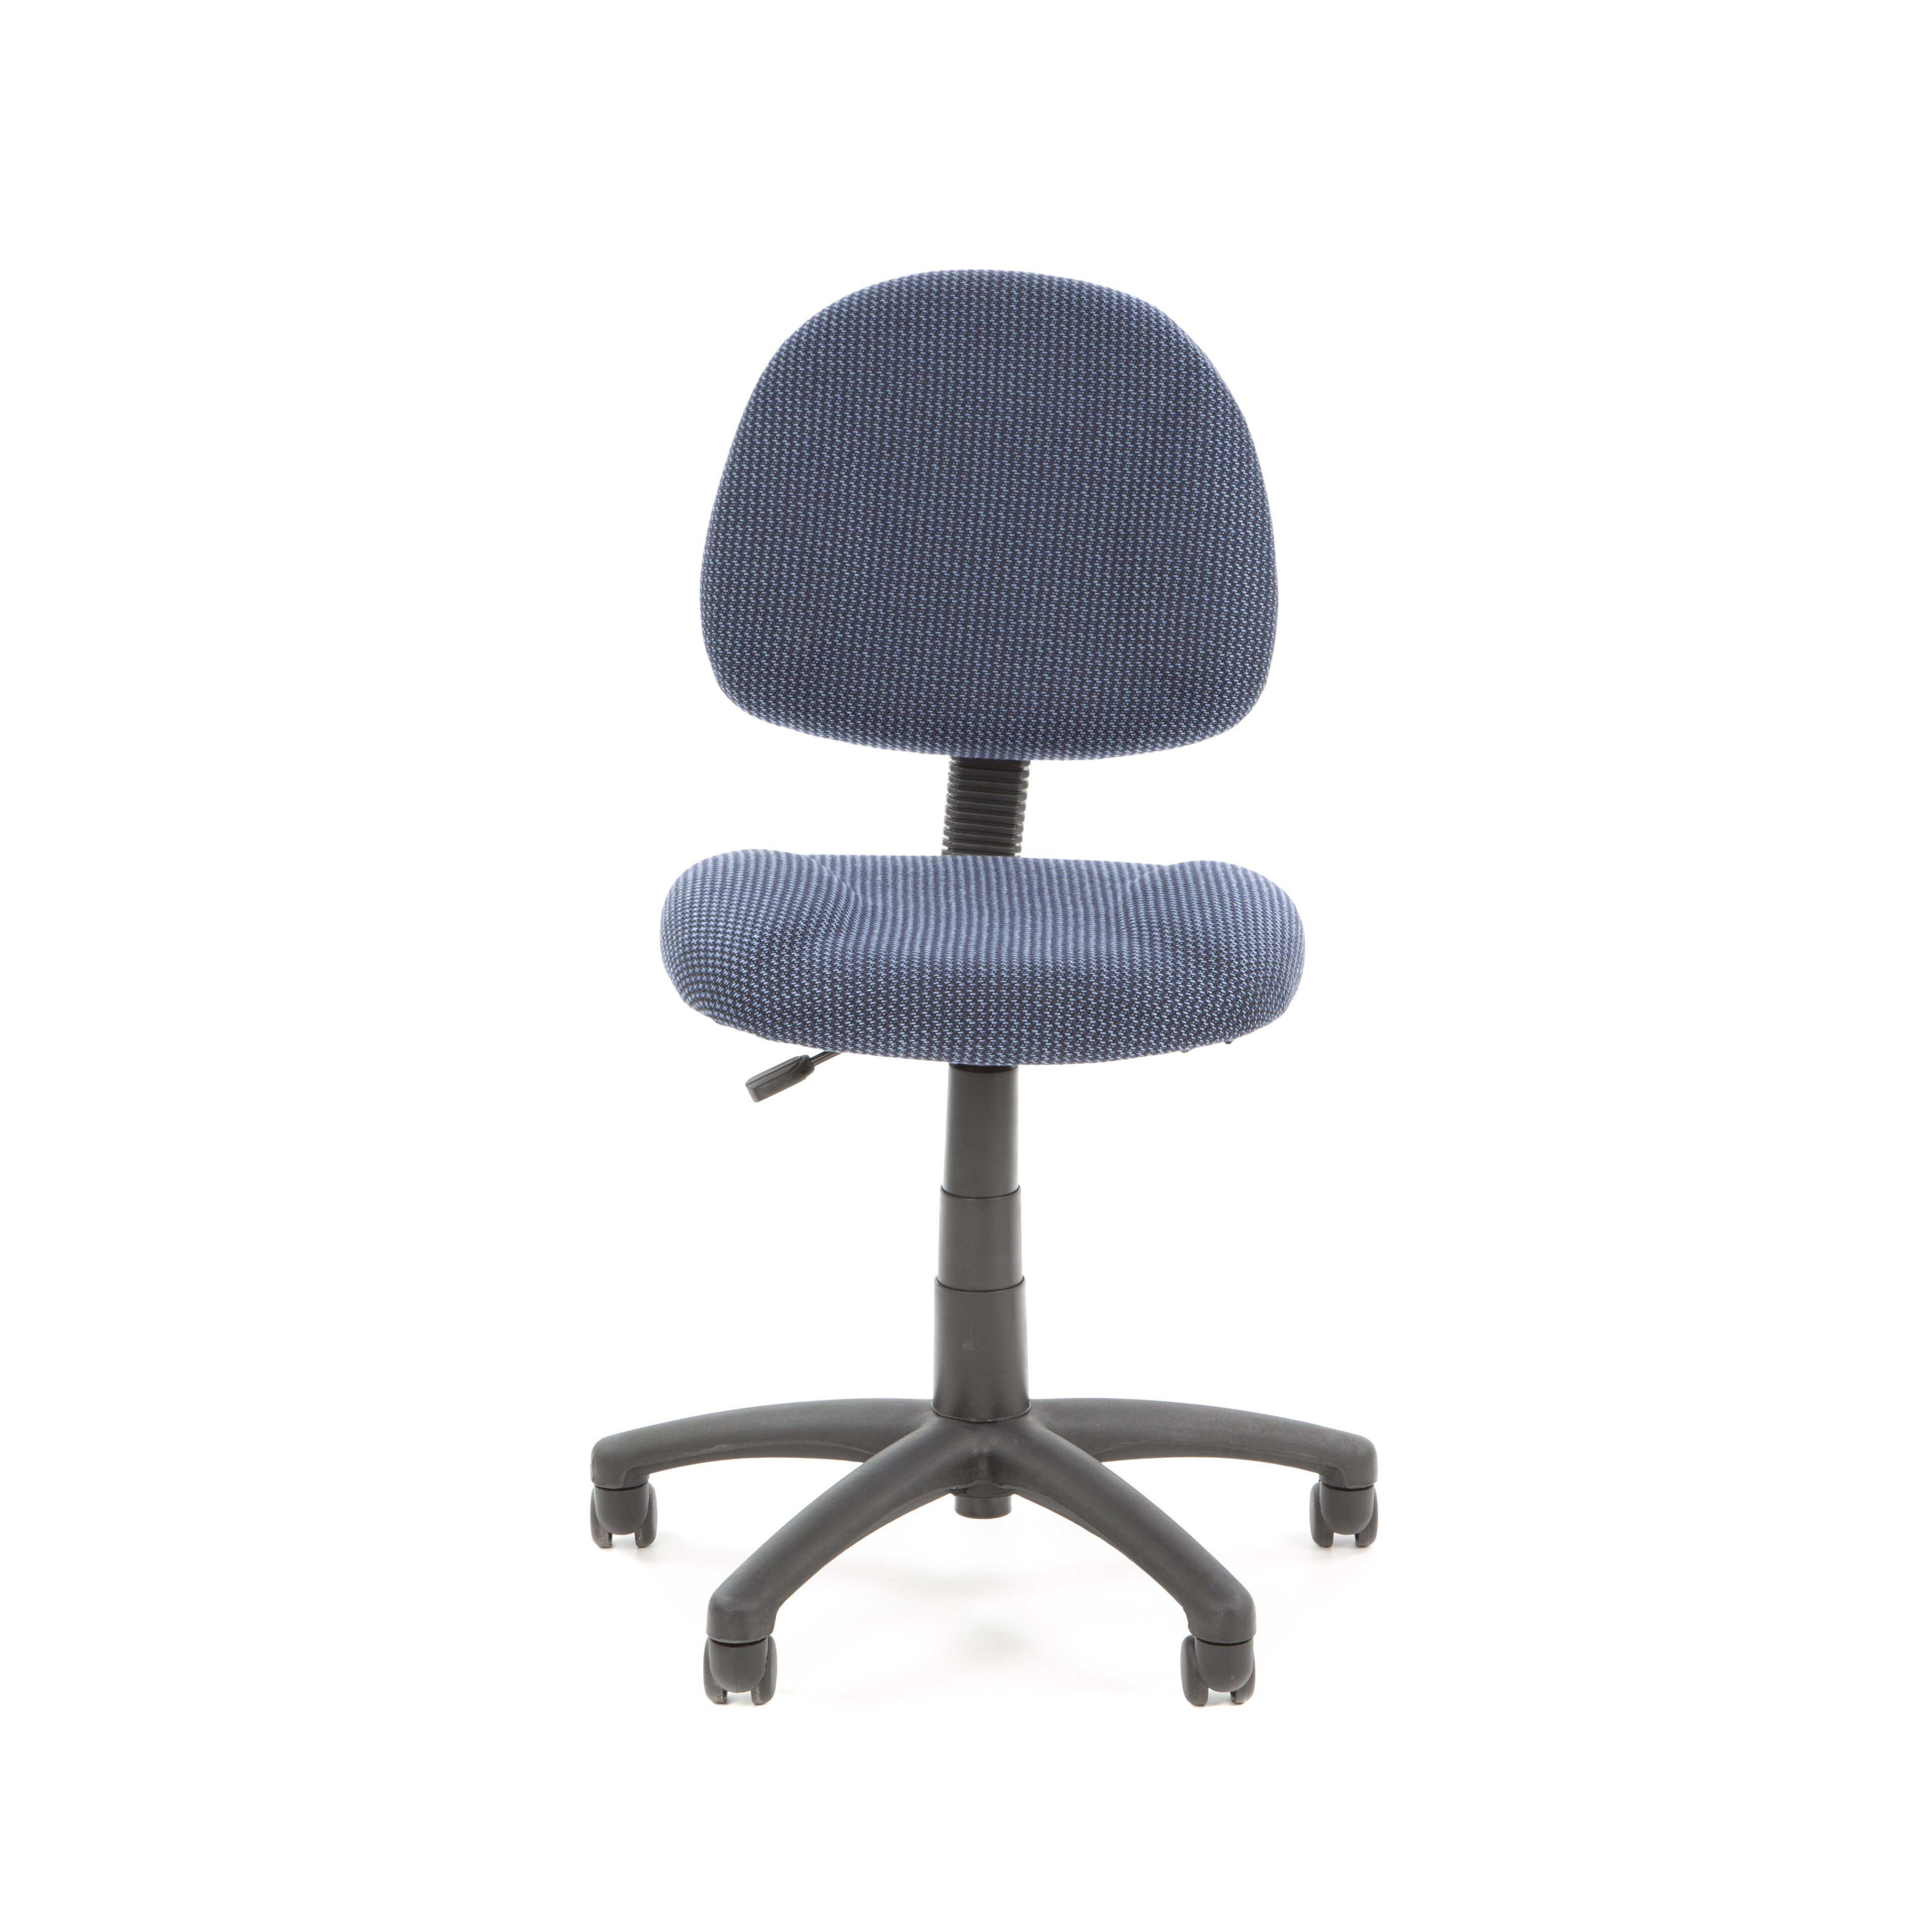 Furniture Office Furniture All Office Chairs Symple Stuff SKU